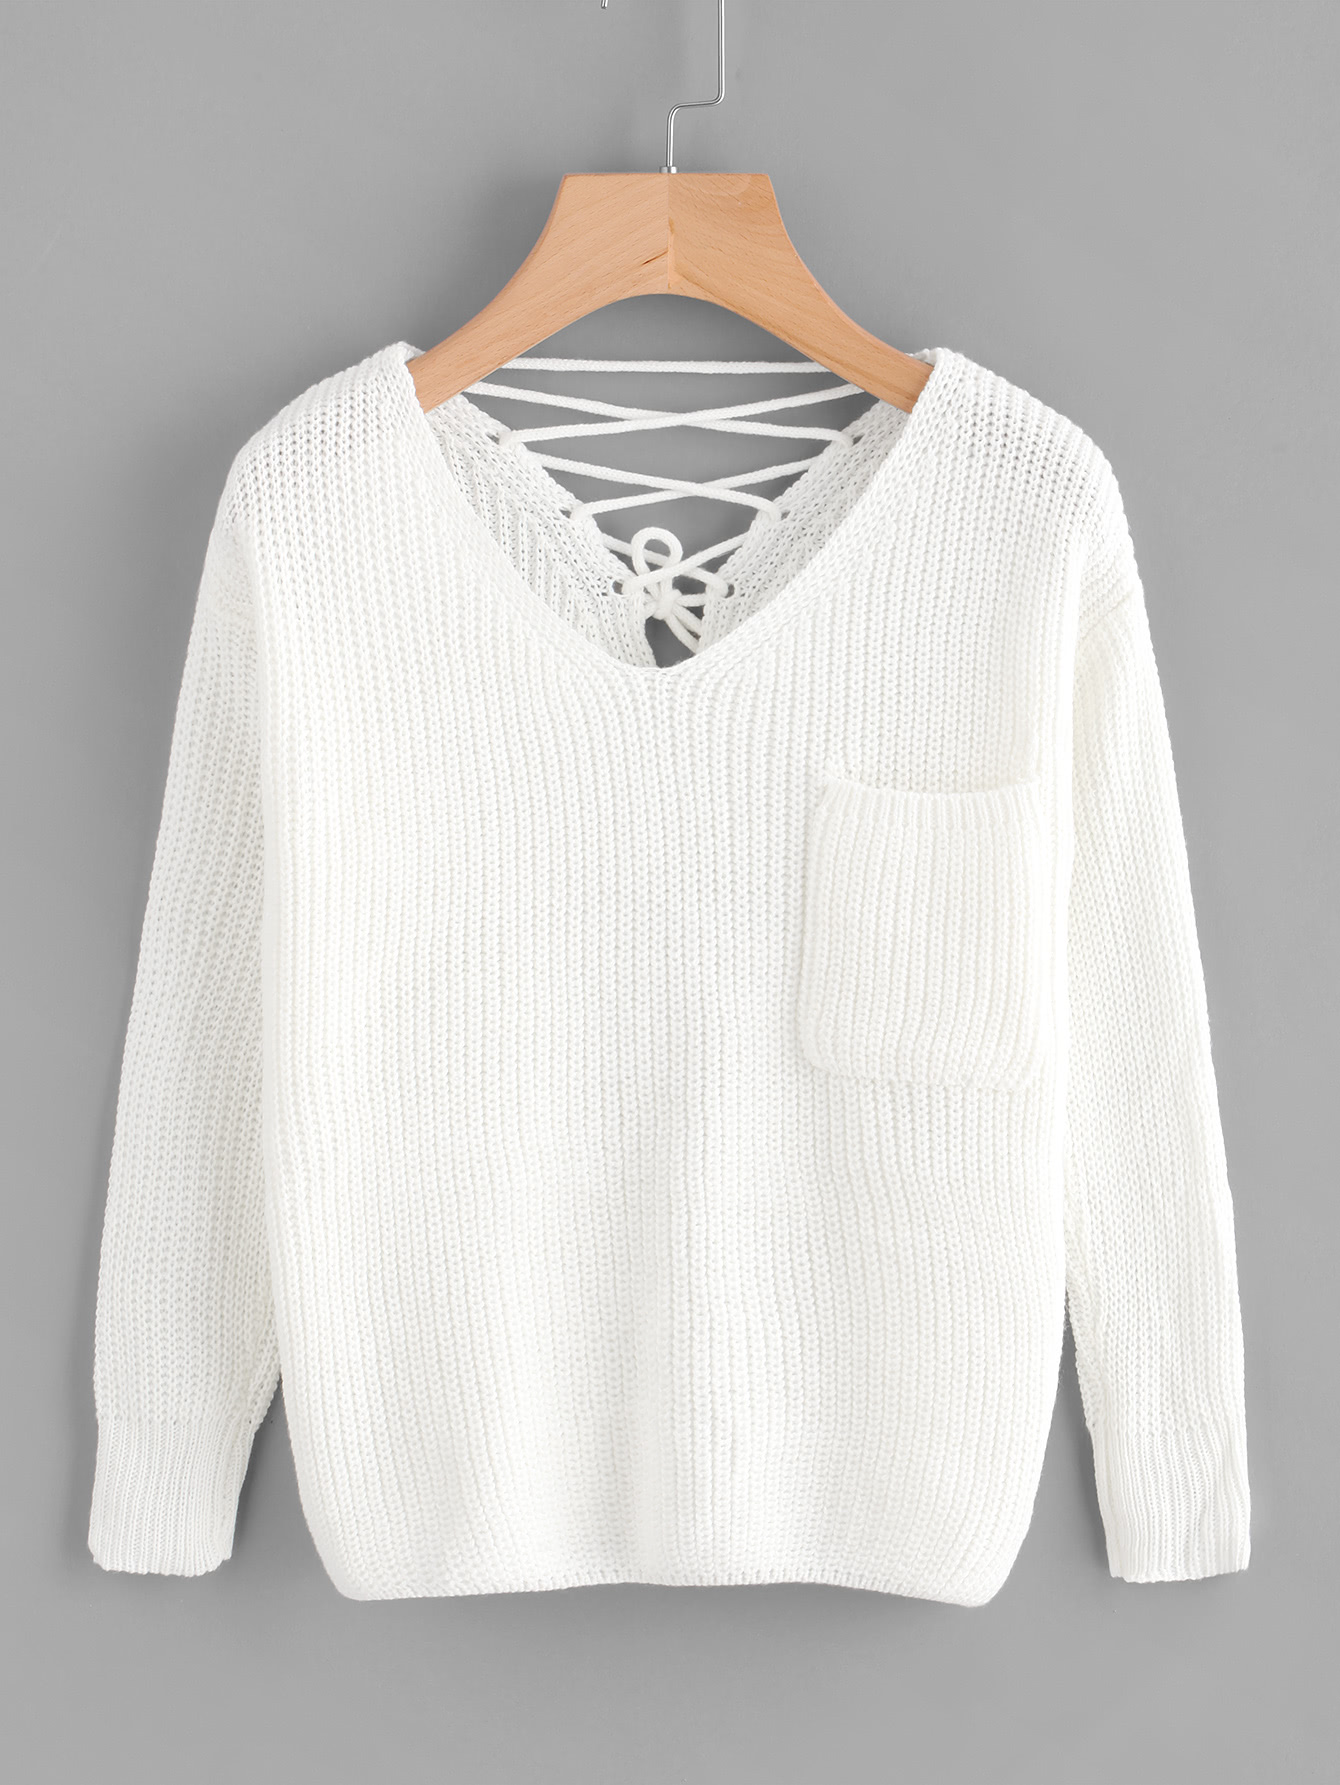 Double V Lace Up Back Chunky Knit Jumper sweater170920001